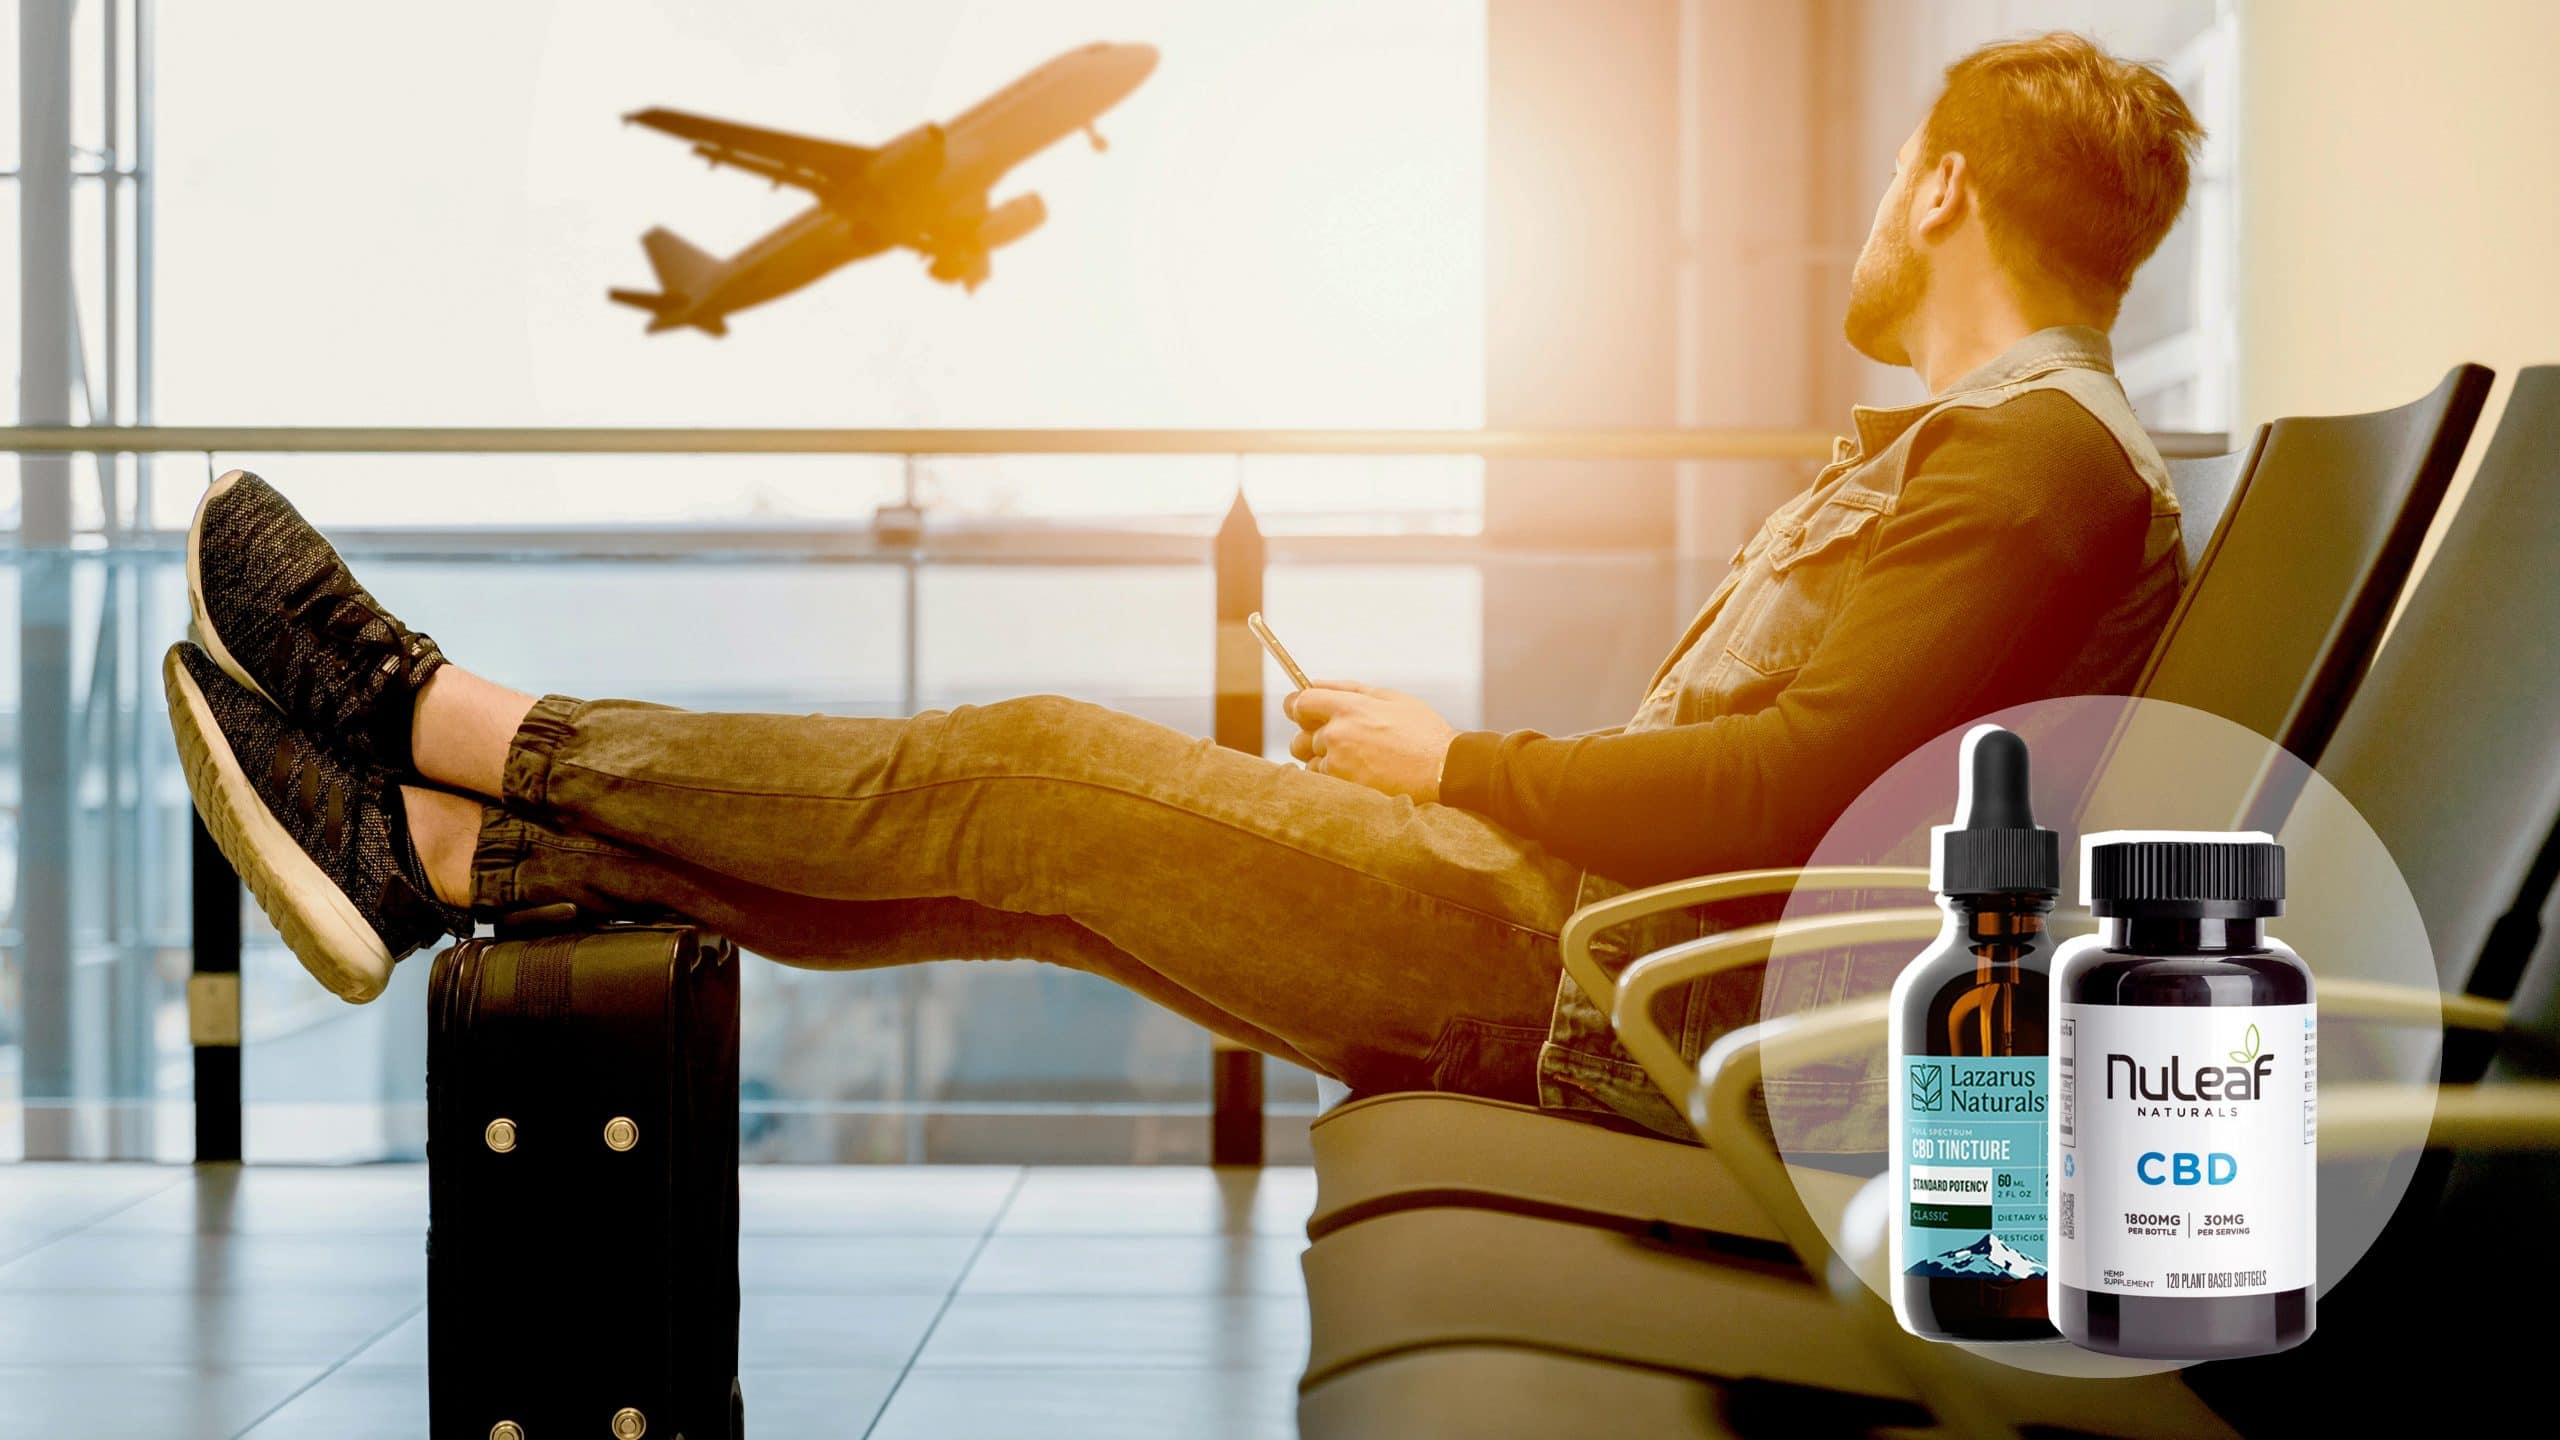 Can You Travel with CBD Oil